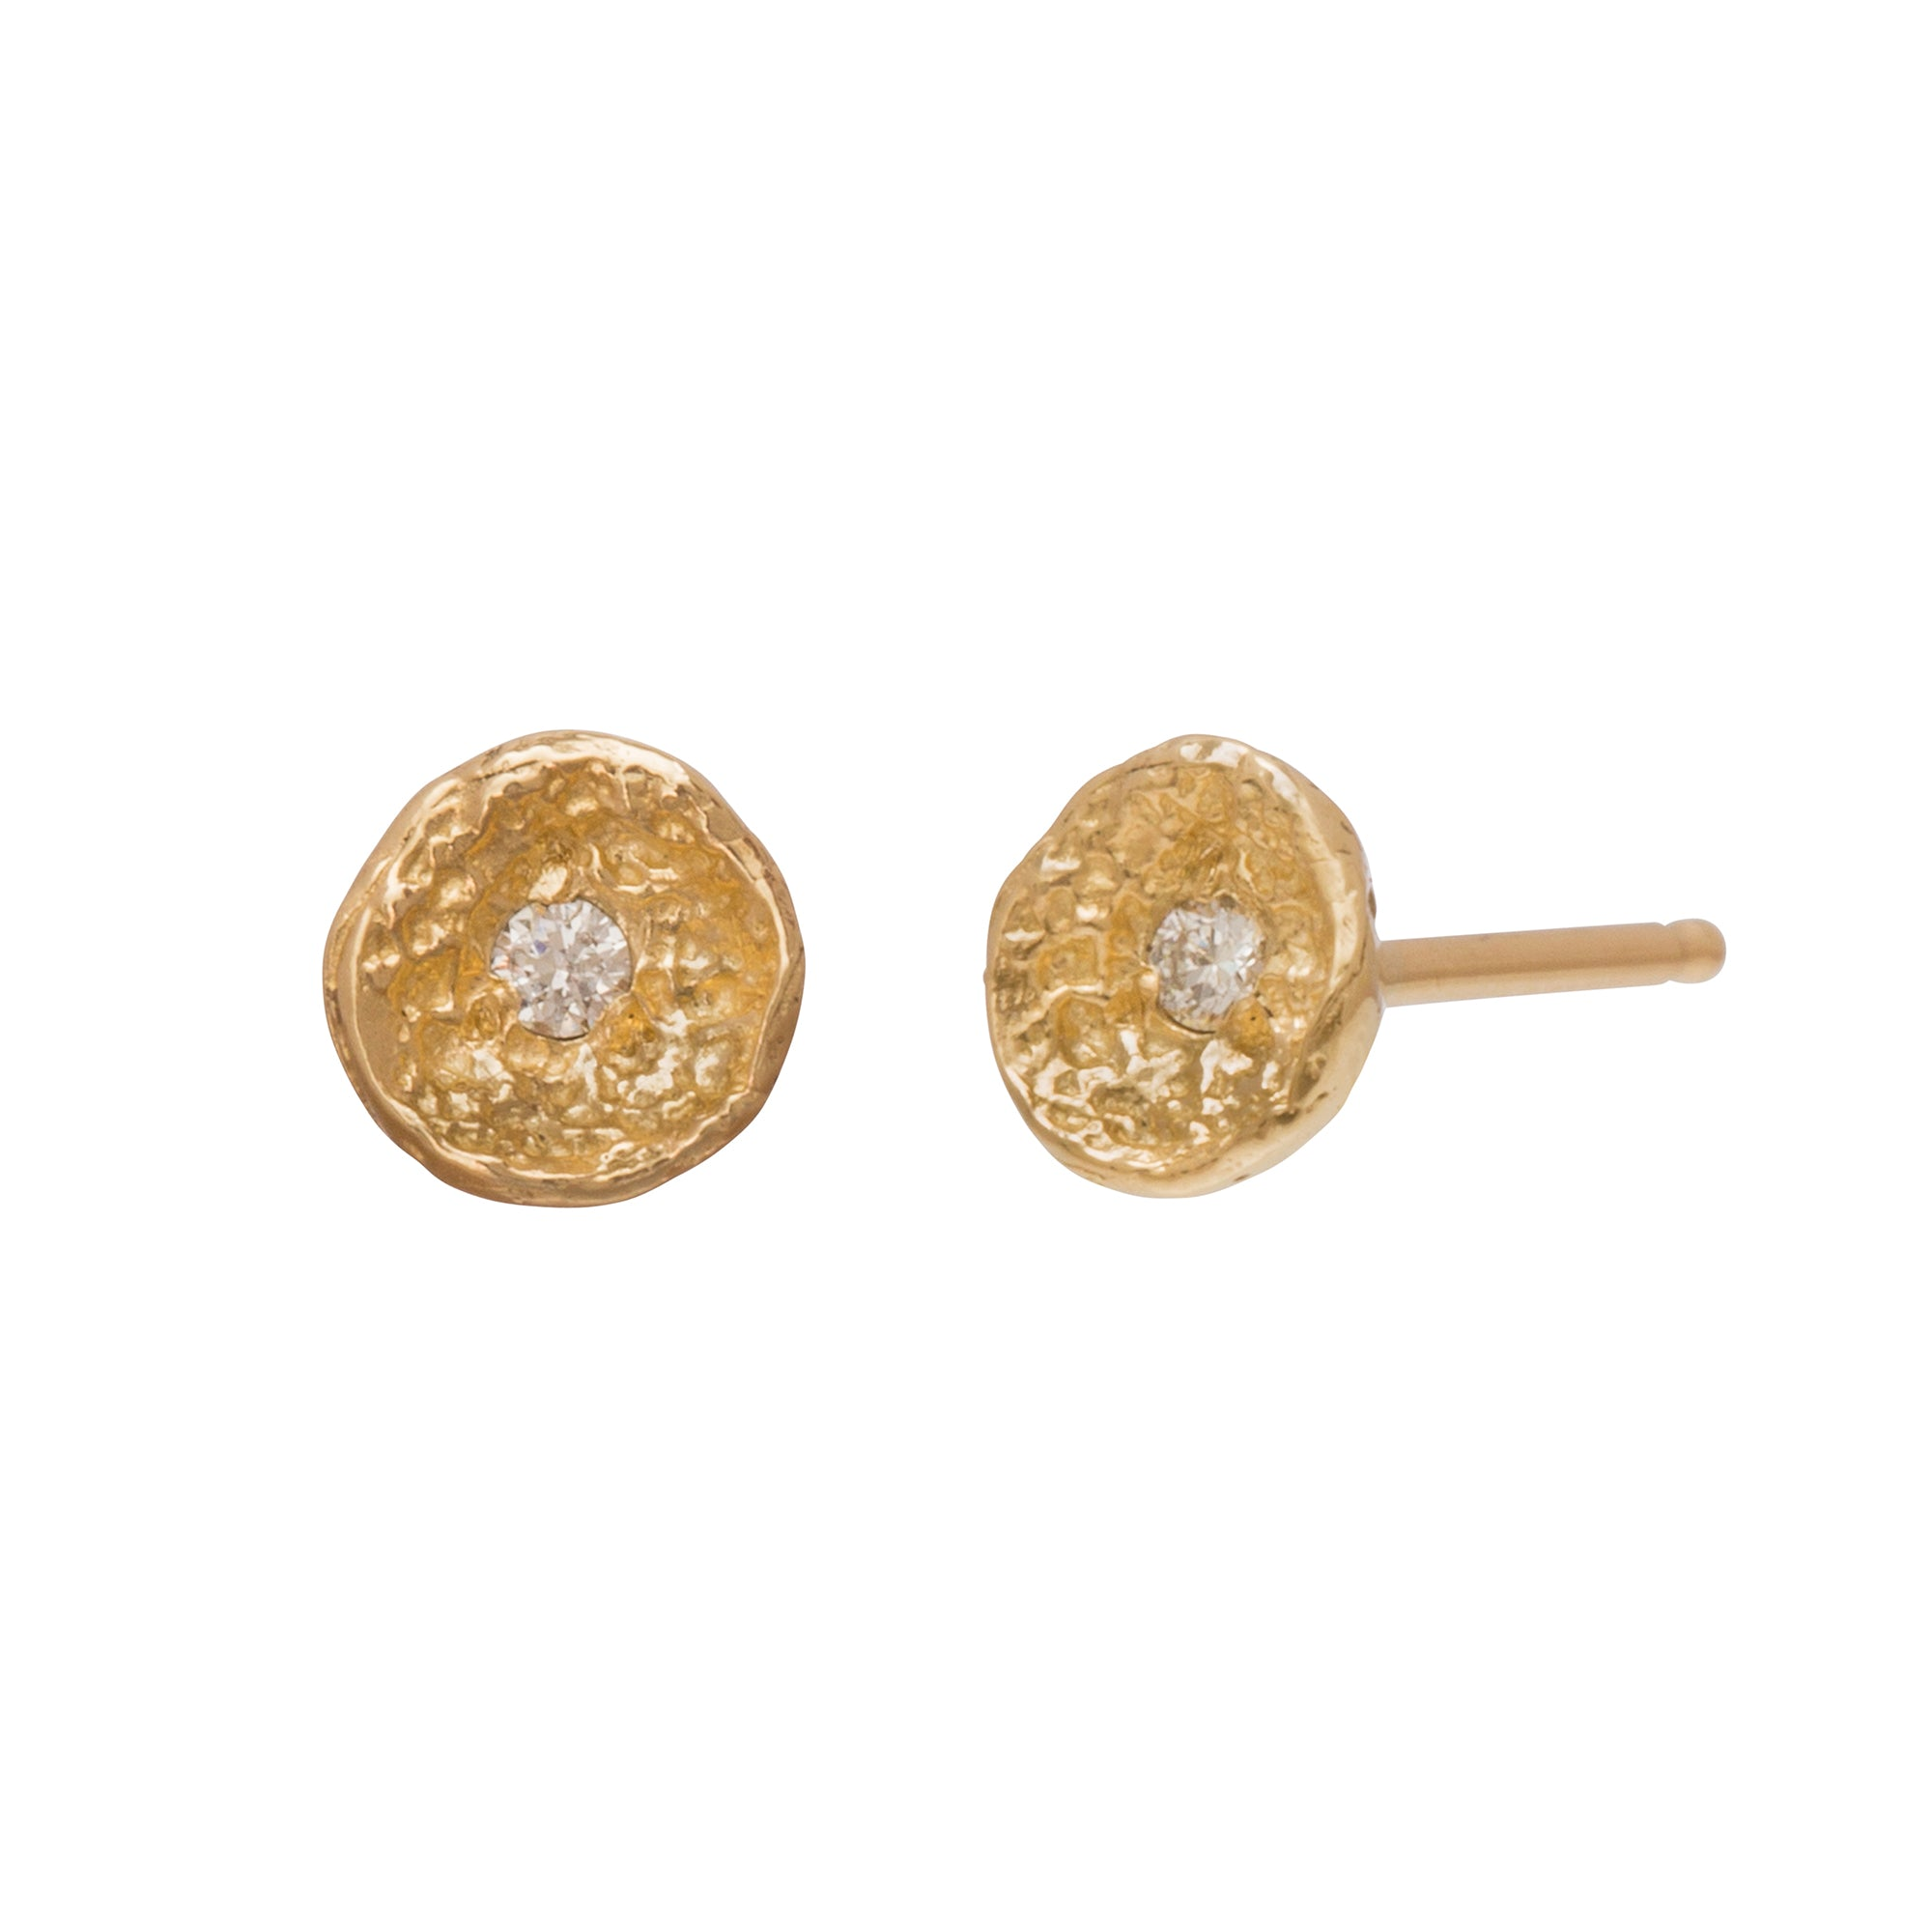 Mini Moss Shell Studs by Branch for Broken English Jewelry